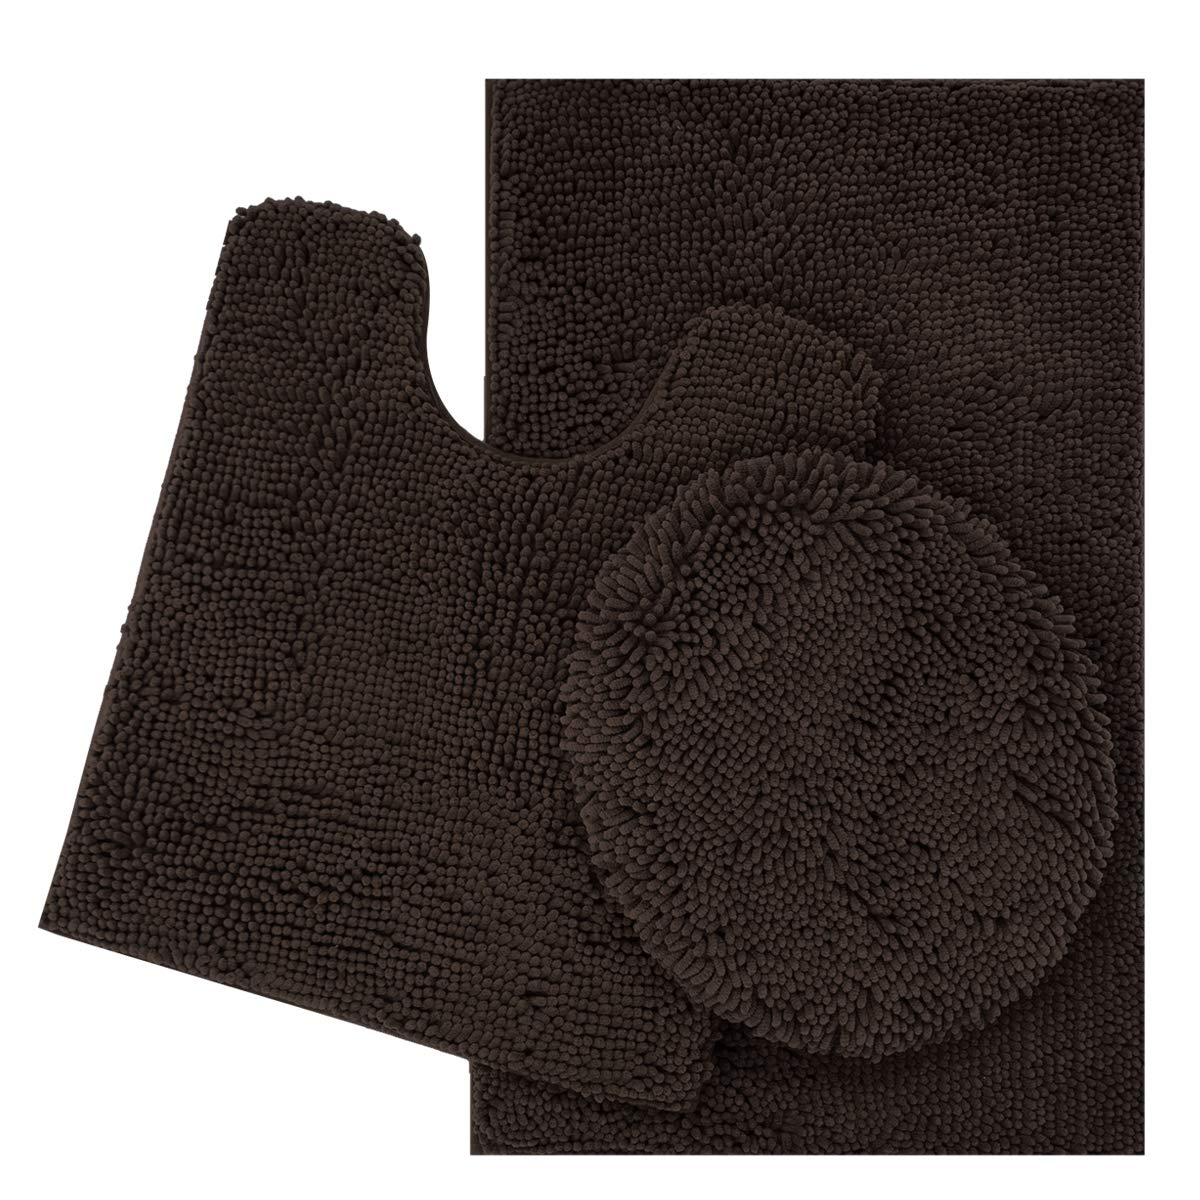 ITSOFT 3pc Non-Slip Shaggy Chenille Bathroom Mat Set, Includes U-Shaped Contour Toilet Mat, Bath Mat and Toilet Lid Cover, Machine Washable, Chocolate Brown